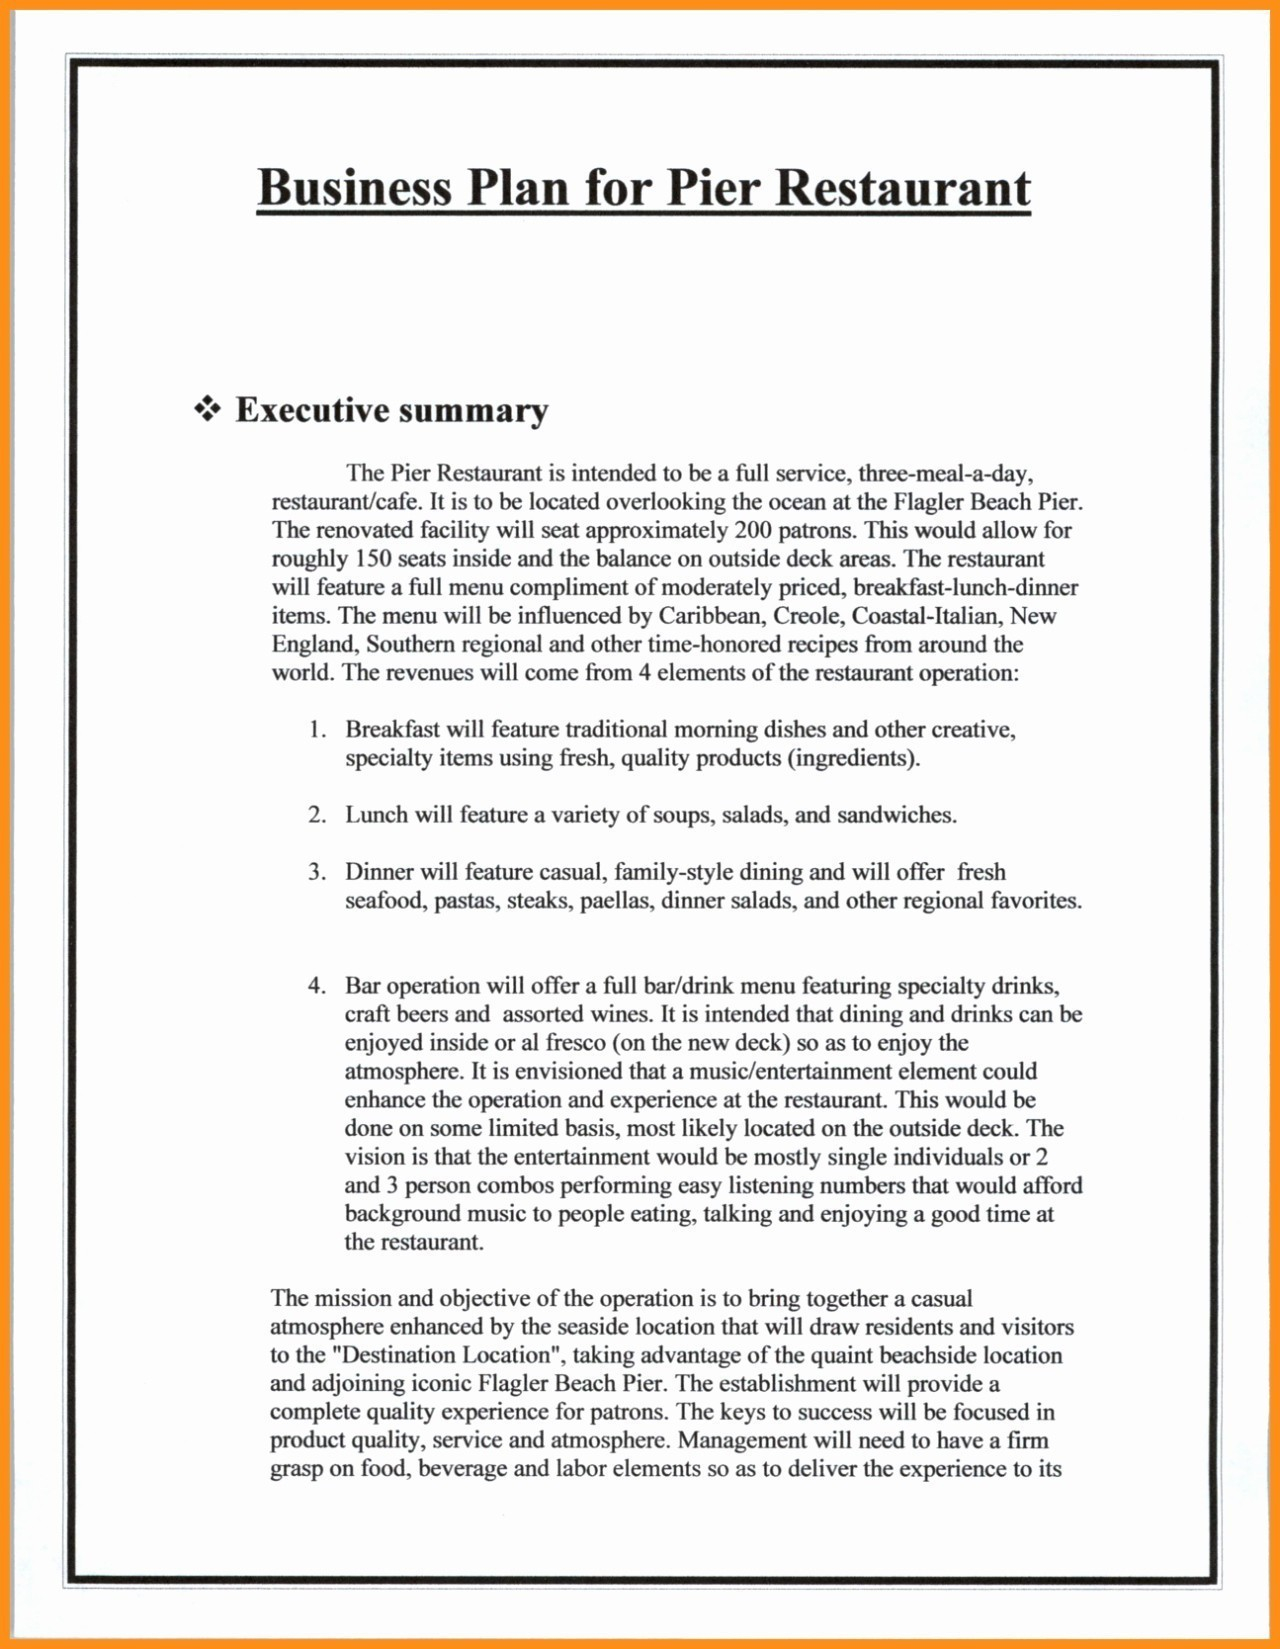 Sports Bar Business Plan Template Free Valid Sports Bar Business Throughout Sports Bar Business Plan Template Free